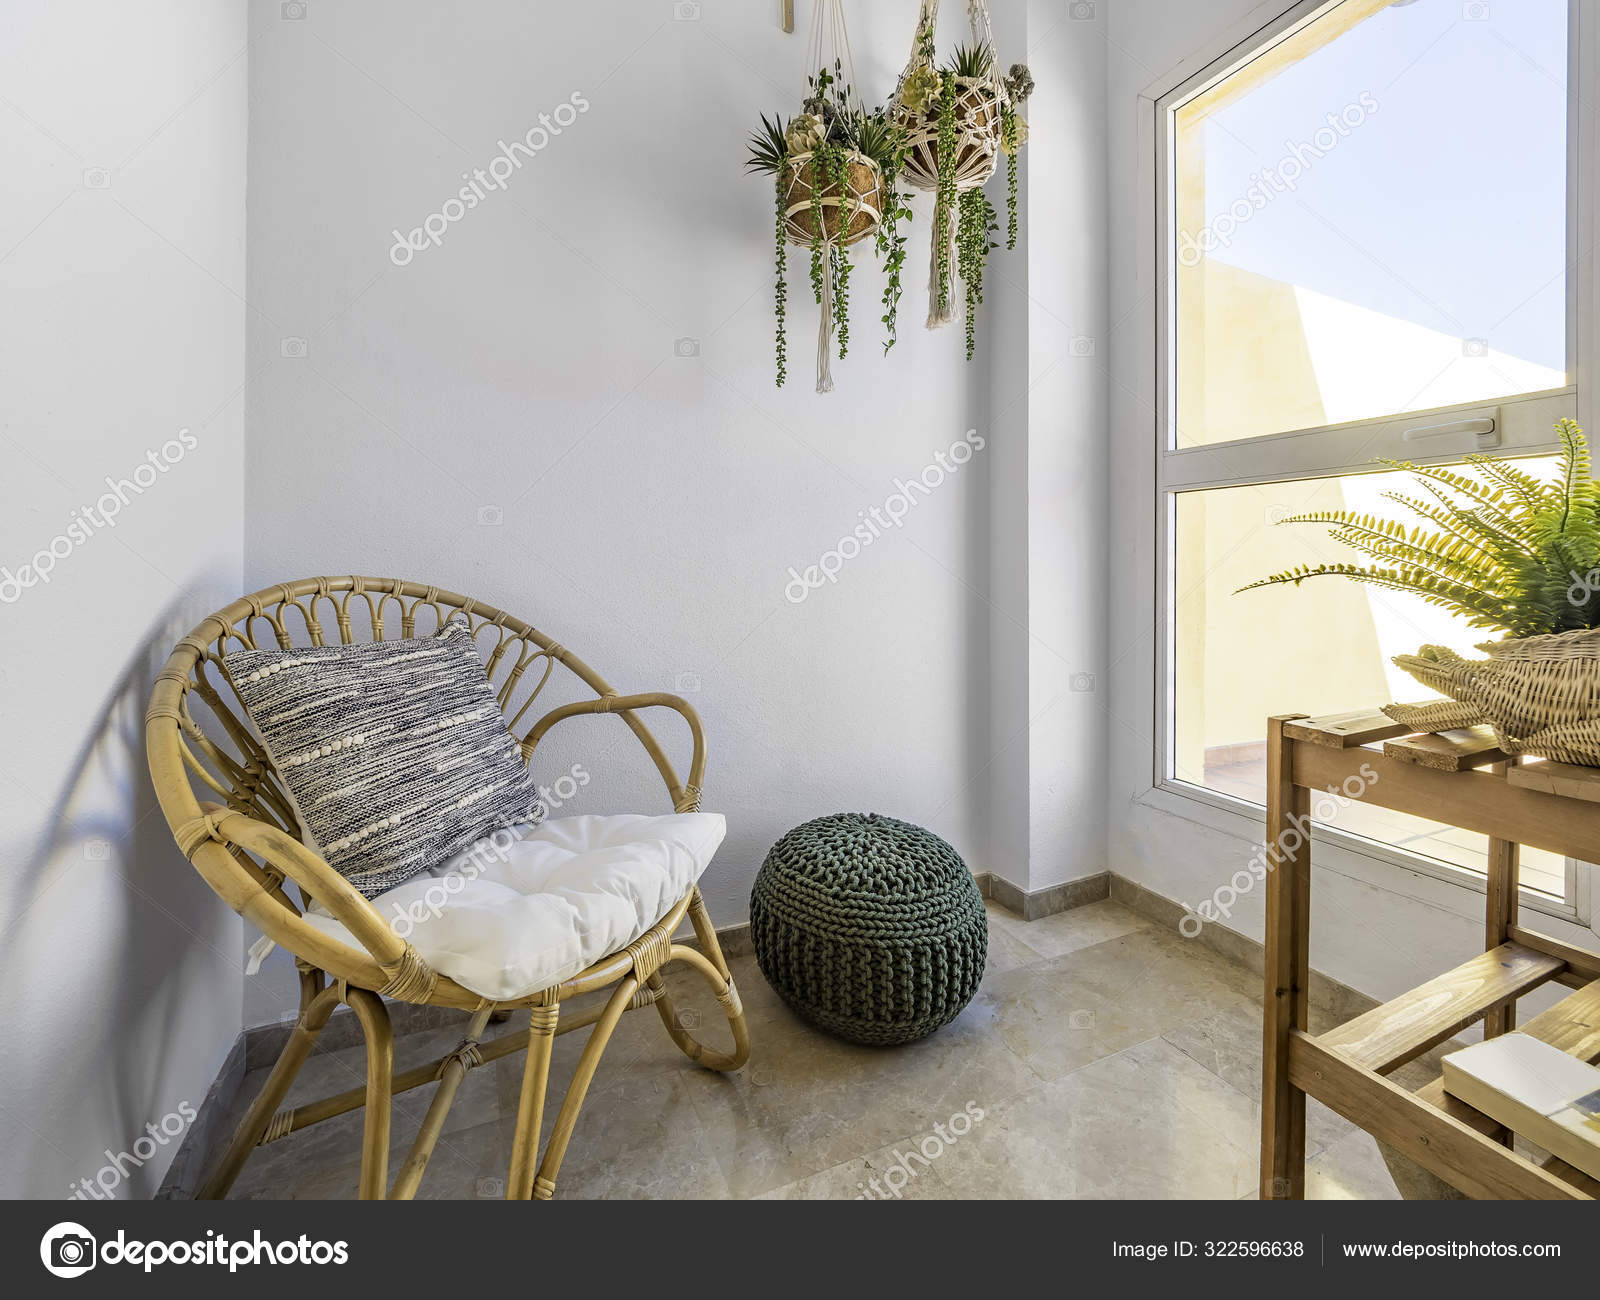 Room Interior Rattan Chair Cushion Macrame Hanging Plants Fiber Pouf Stock Photo Image By Elroce 322596638